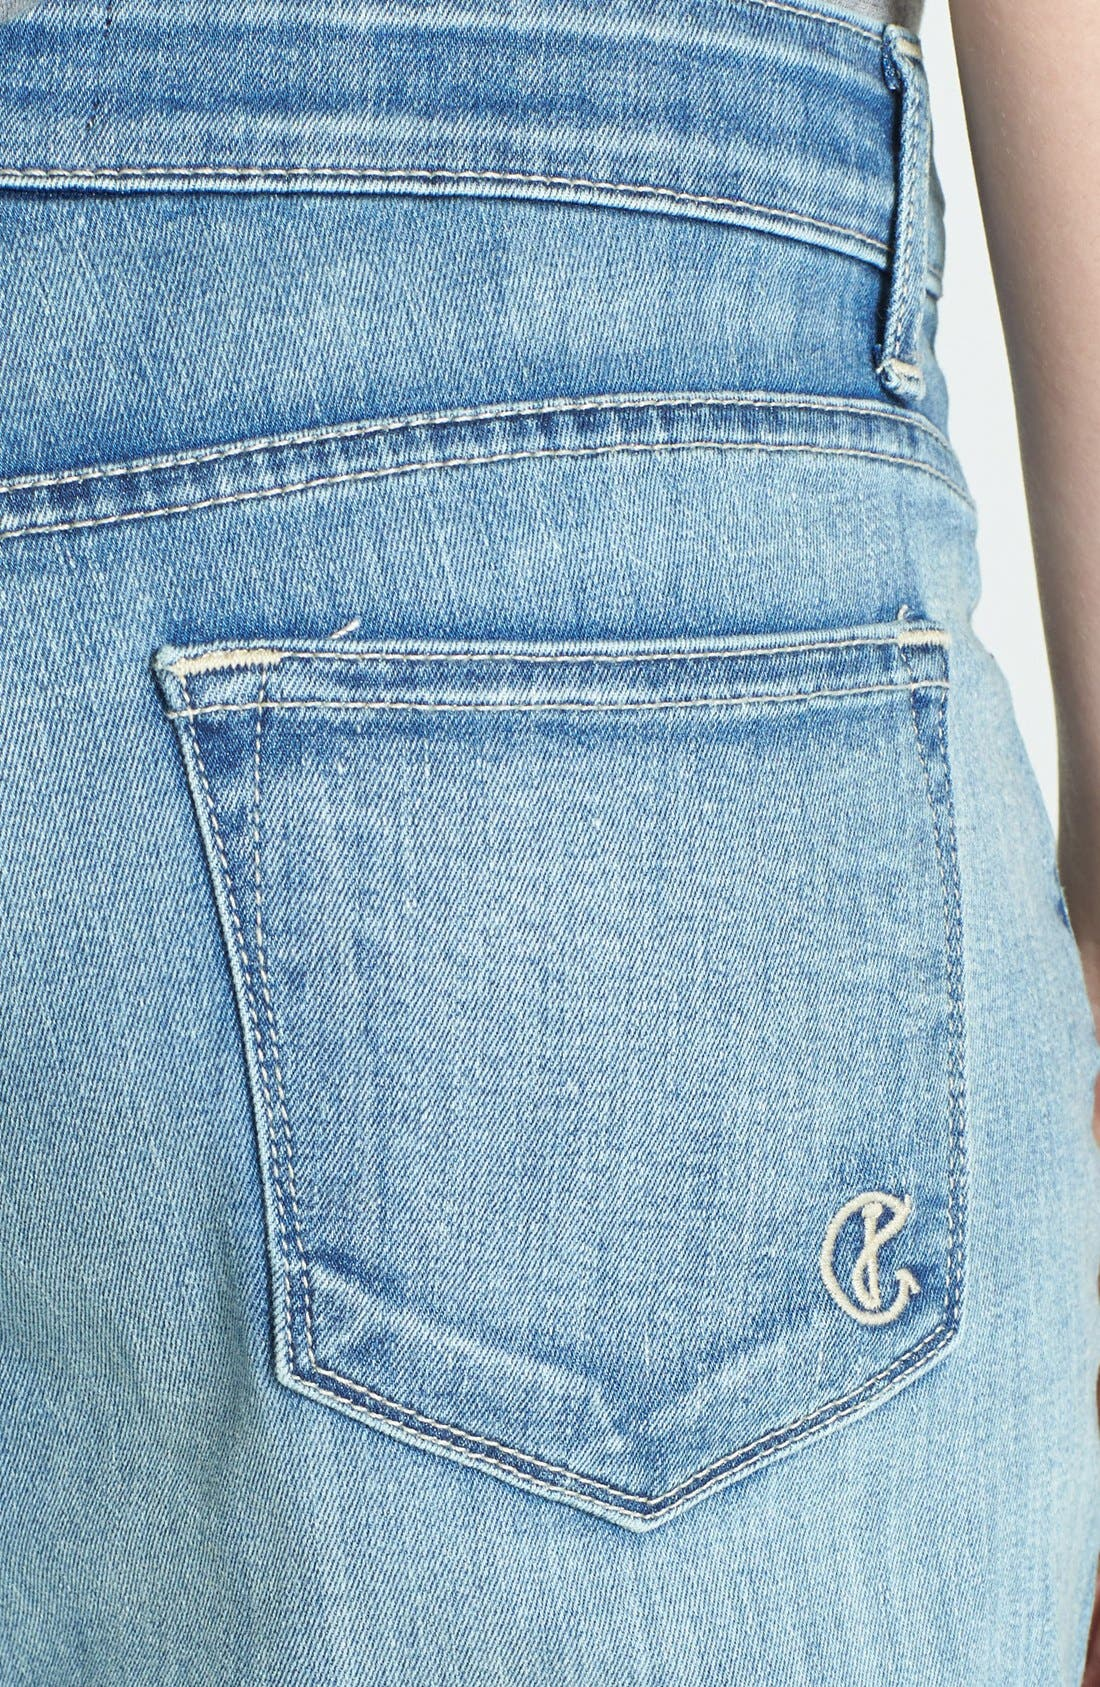 Alternate Image 3  - CJ by Cookie Johnson 'Rejoice' Stretch Crop Boyfriend Jeans (Simpson)